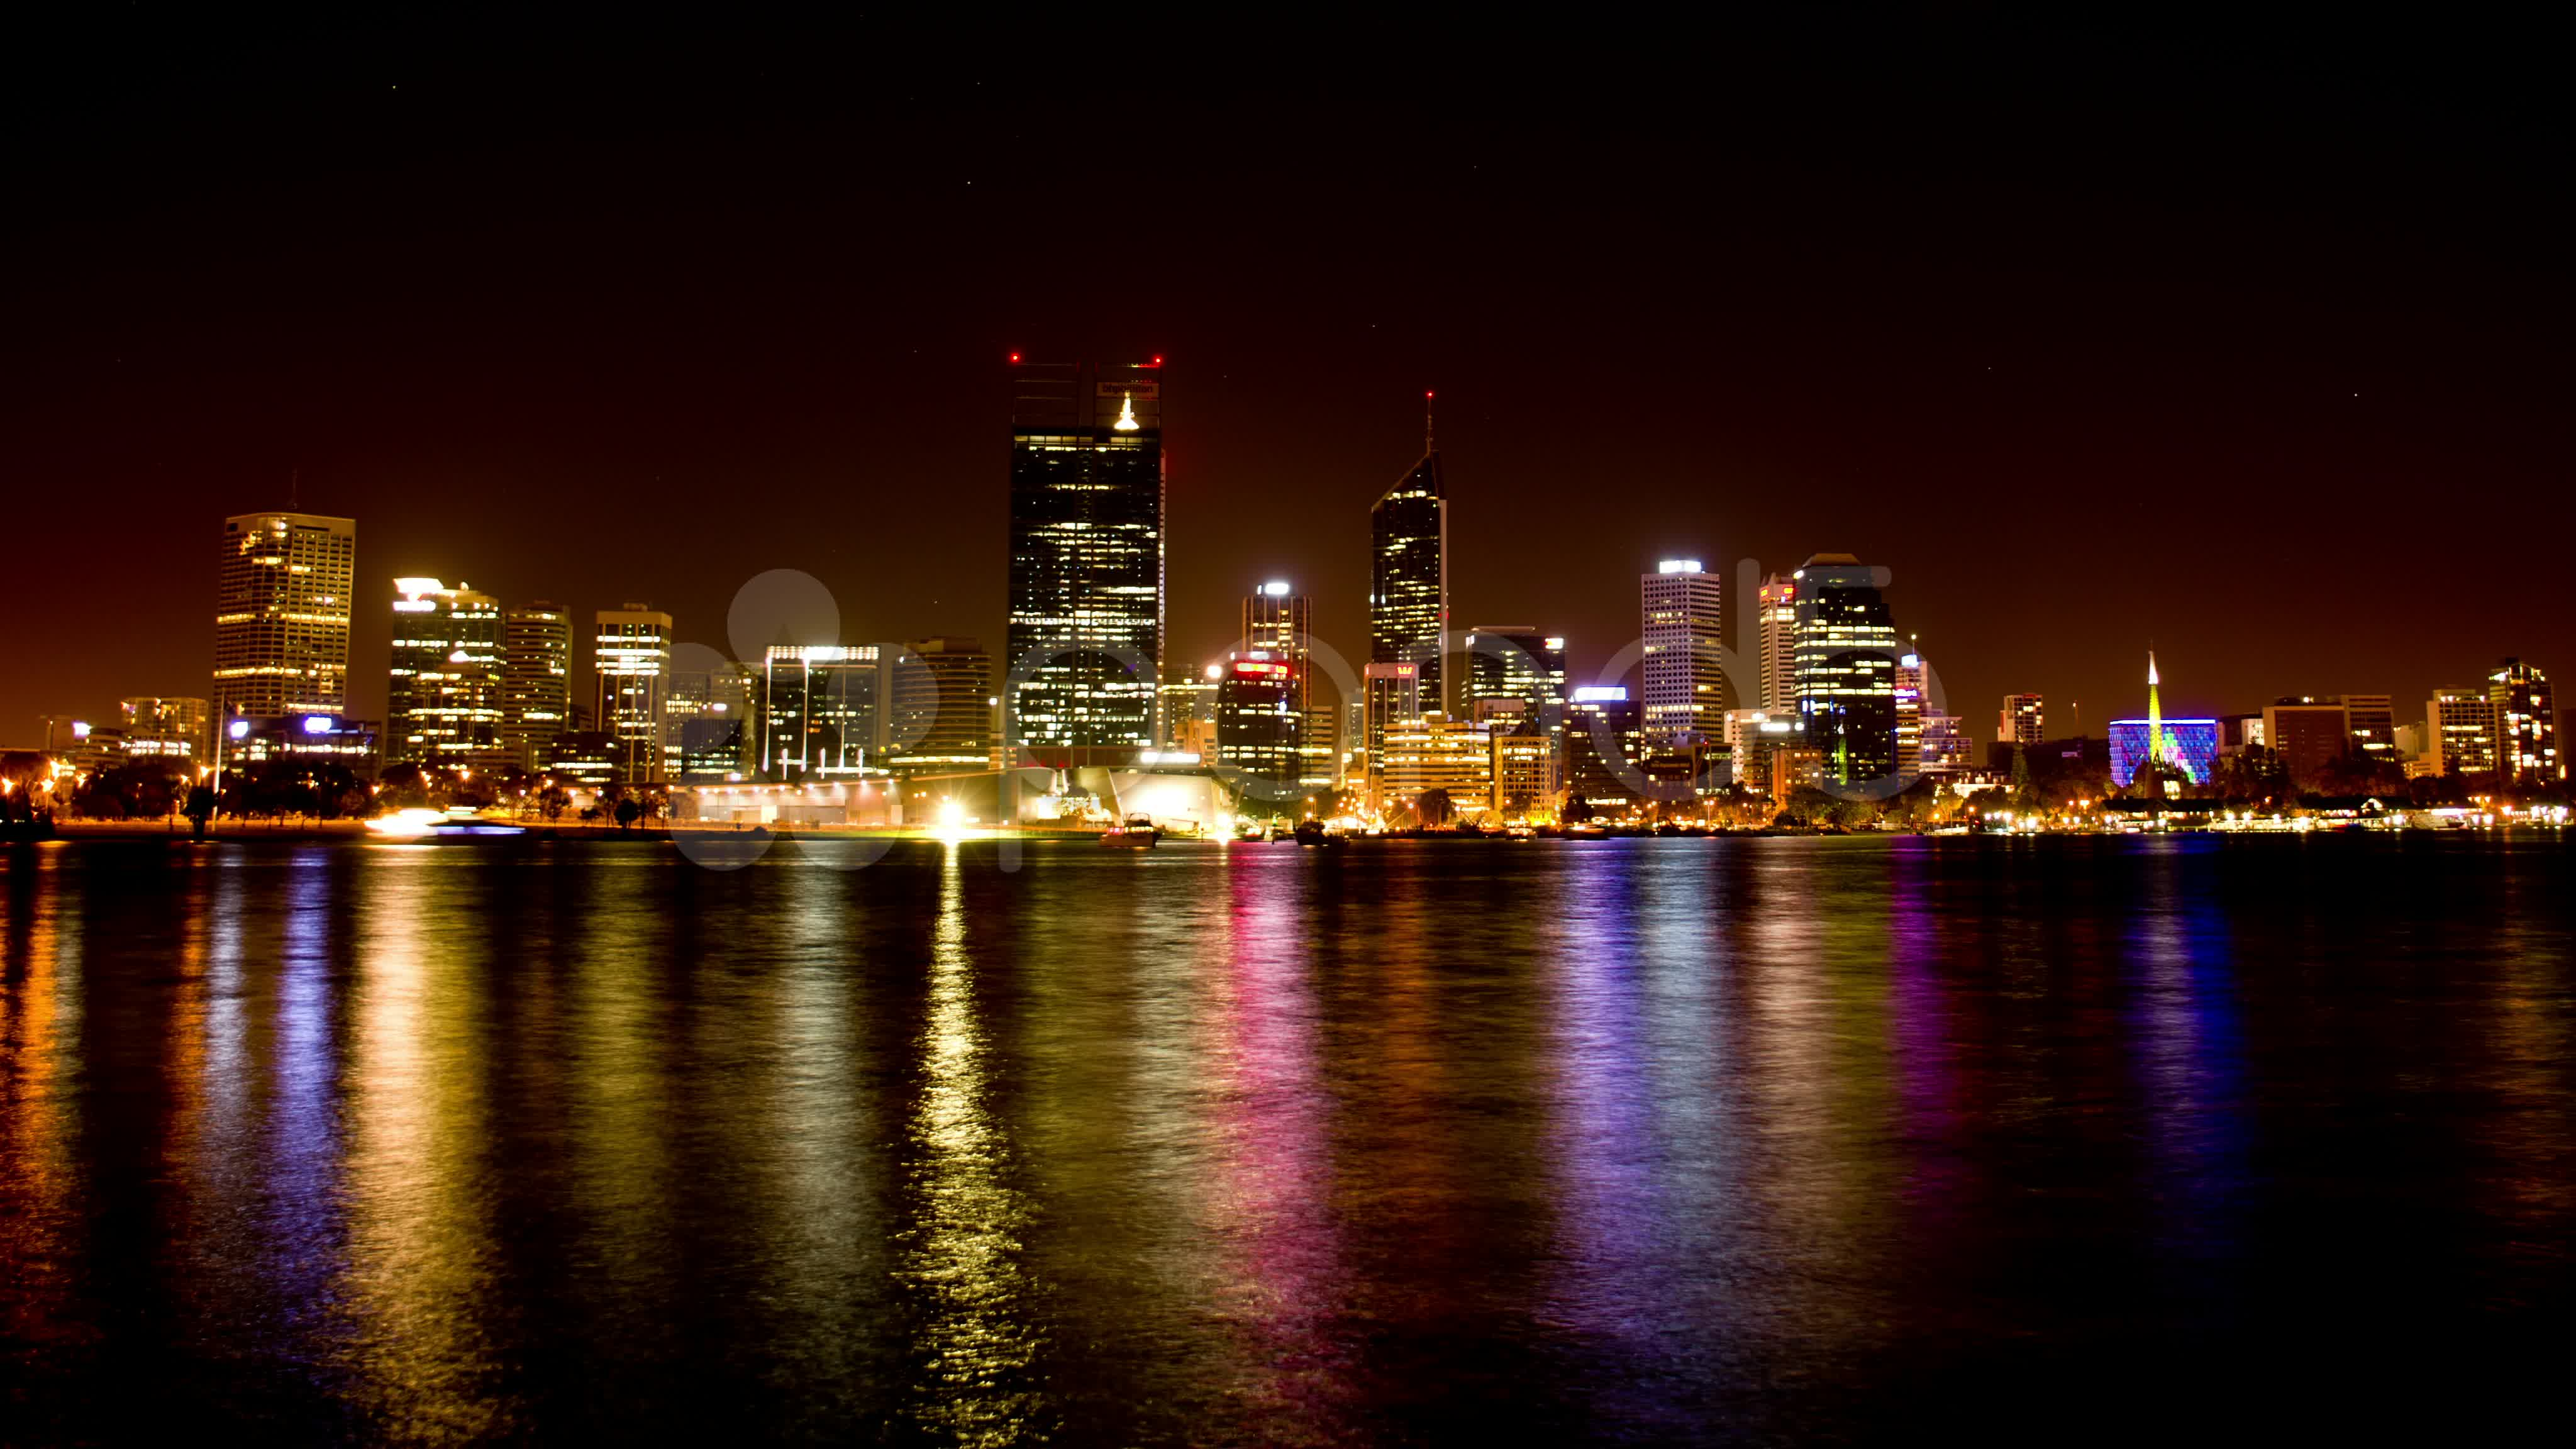 City Night Time Wallpapers on City Lights Hd Wallpaper